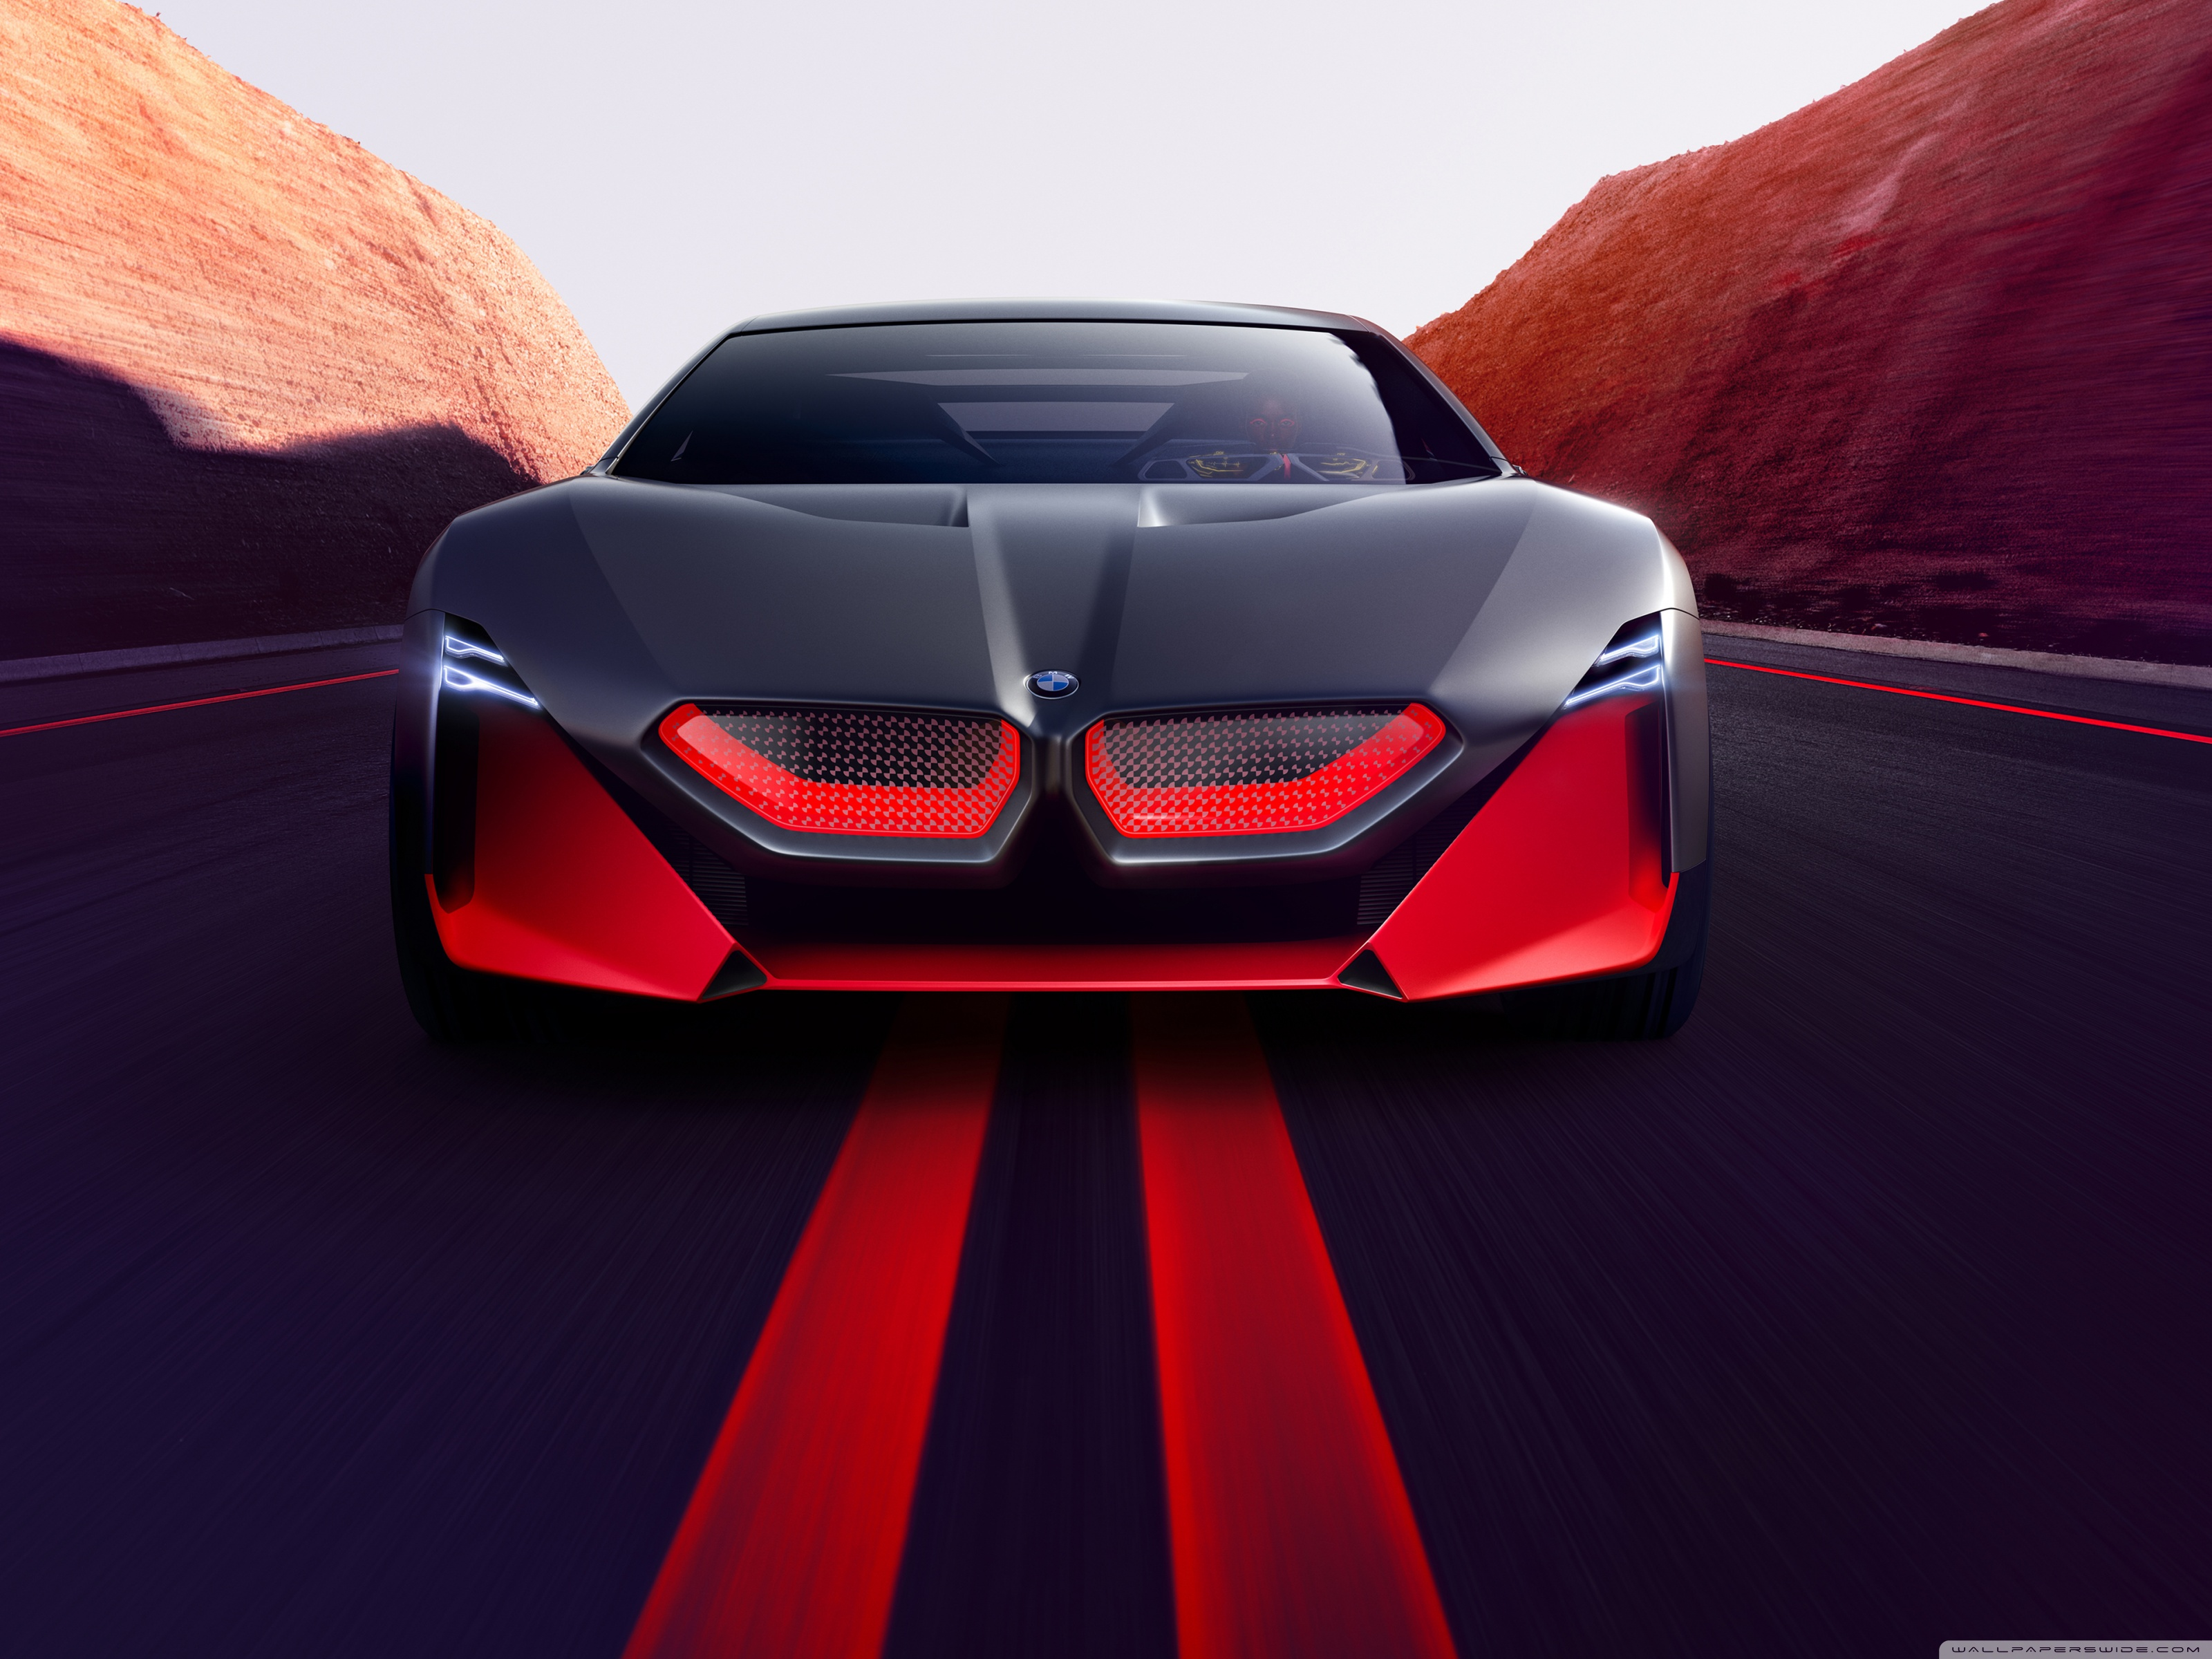 2019 BMW Vision M NEXT Sports Car Road 4K HD Desktop Wallpaper 3200x2400